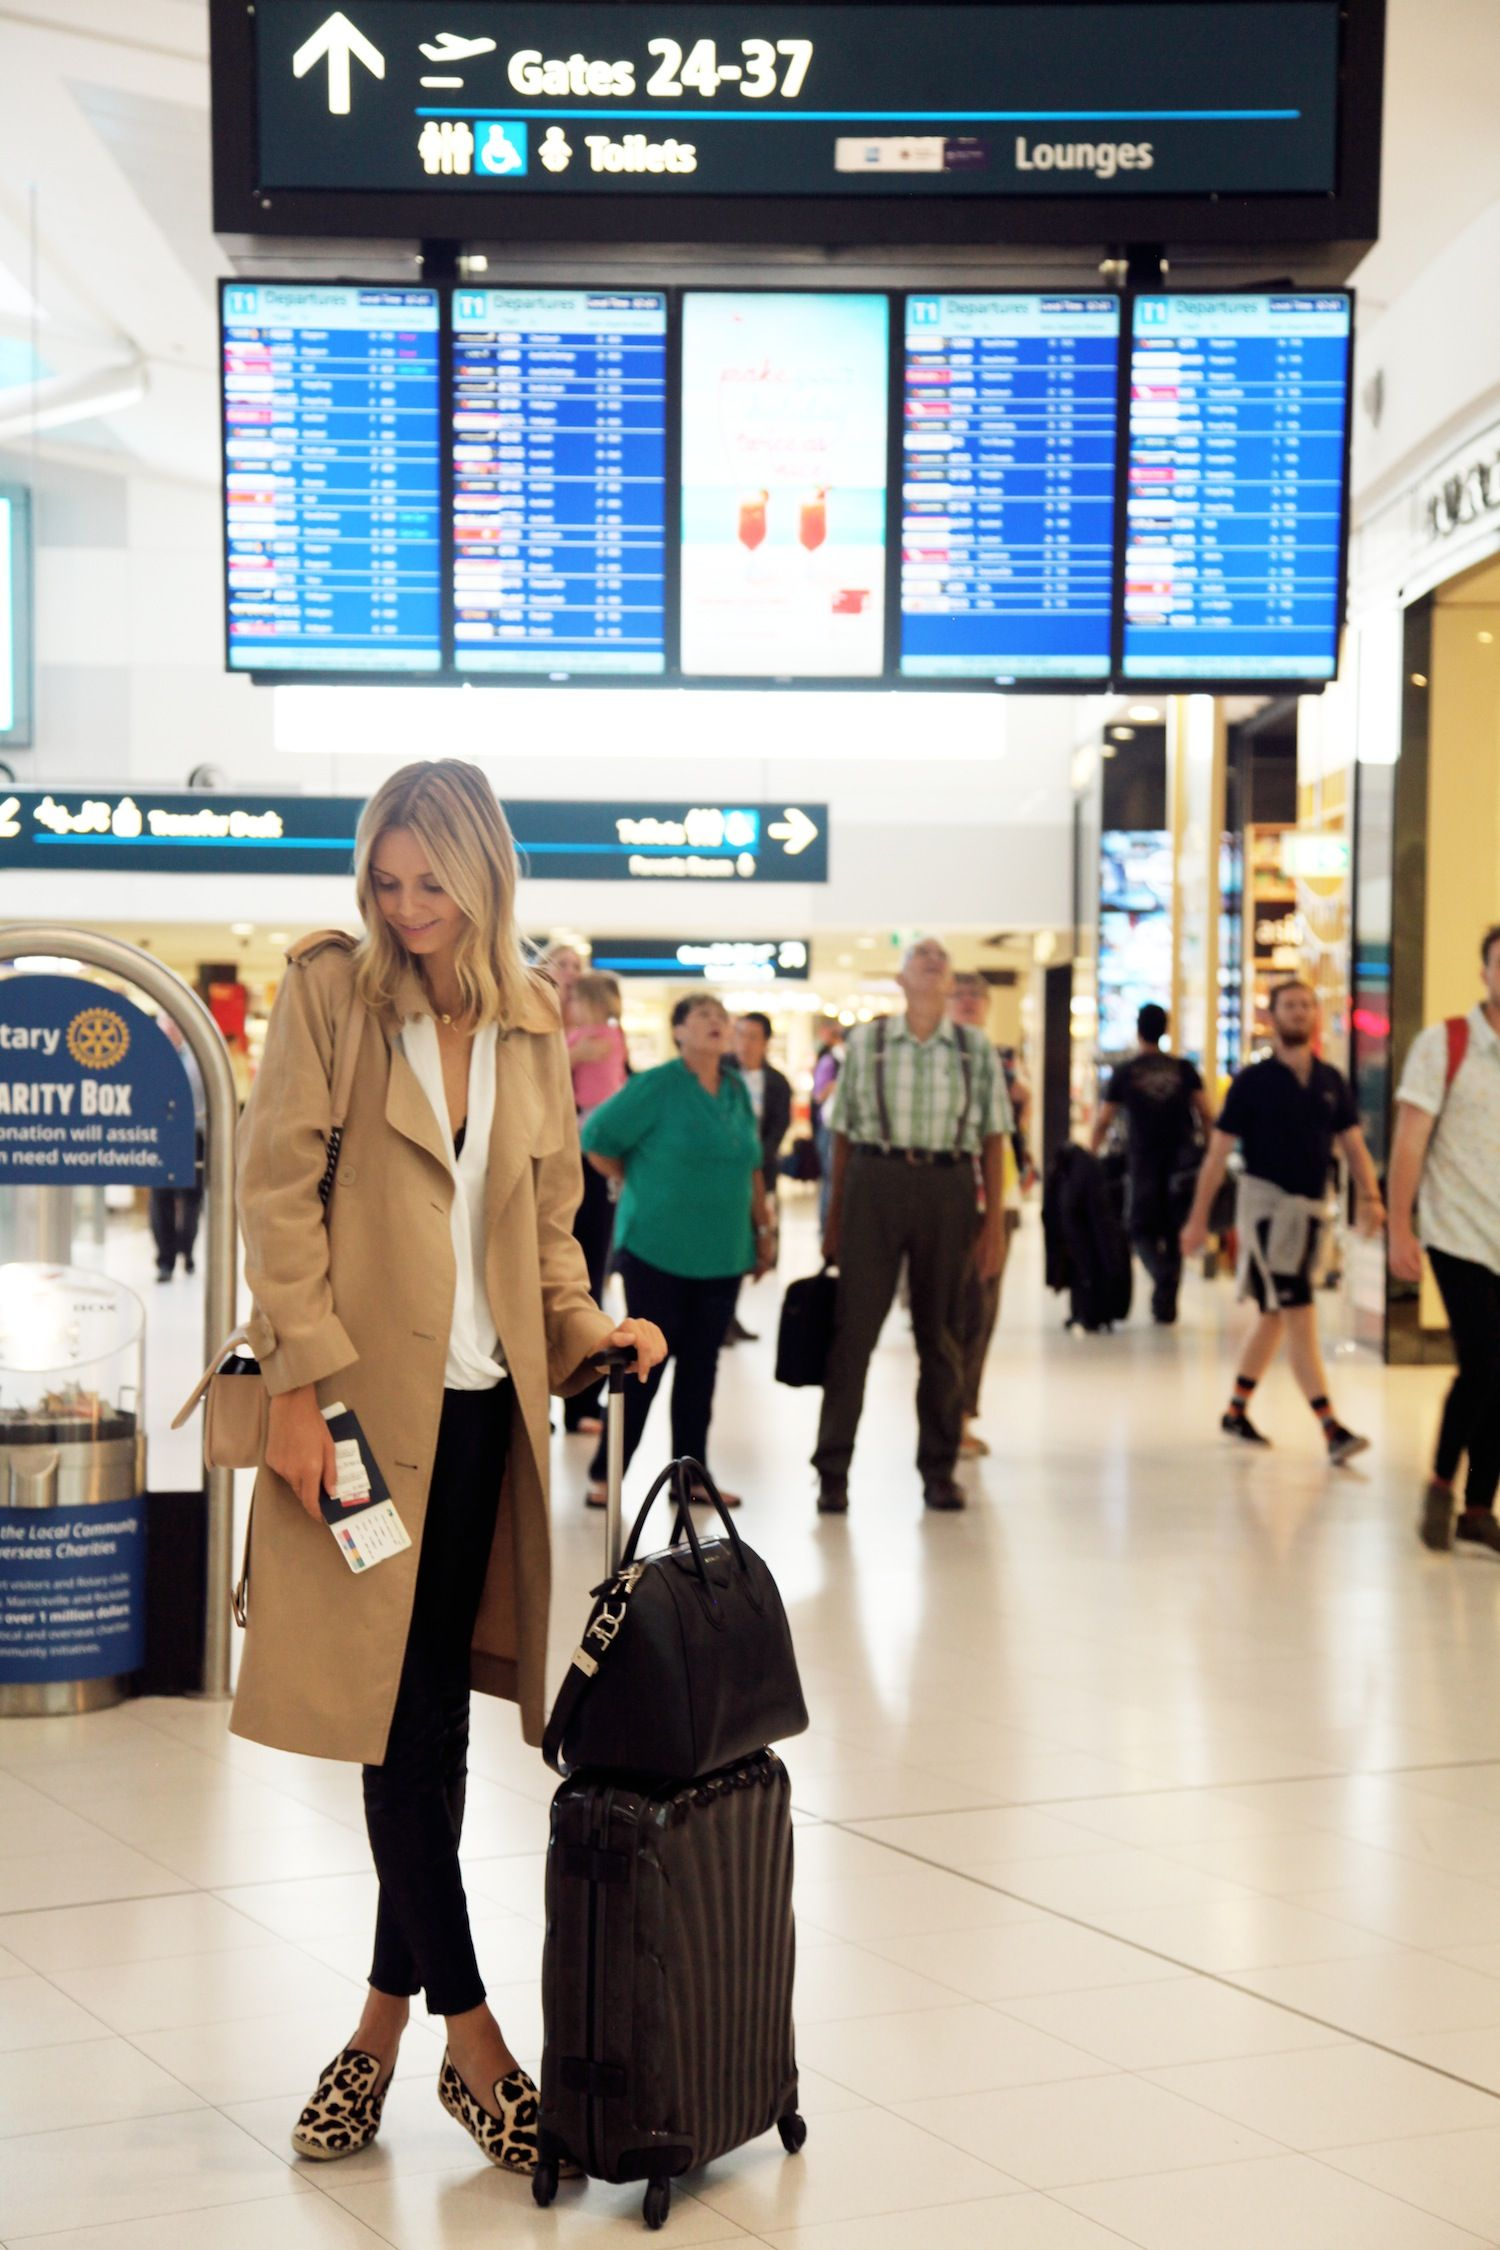 Work at the airport: what you should know about it